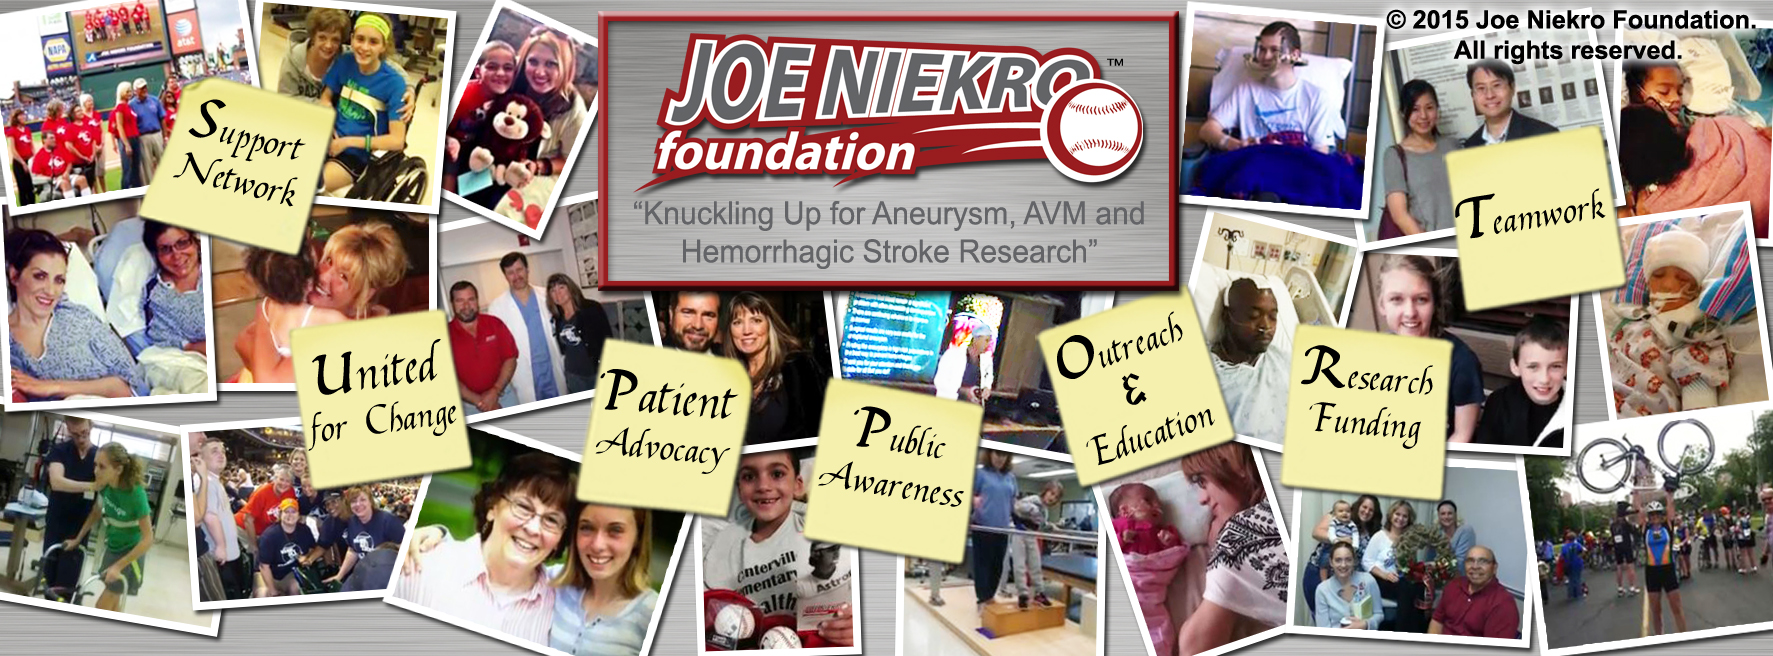 https://www.joeniekrofoundation.com/home-billboards/2631/